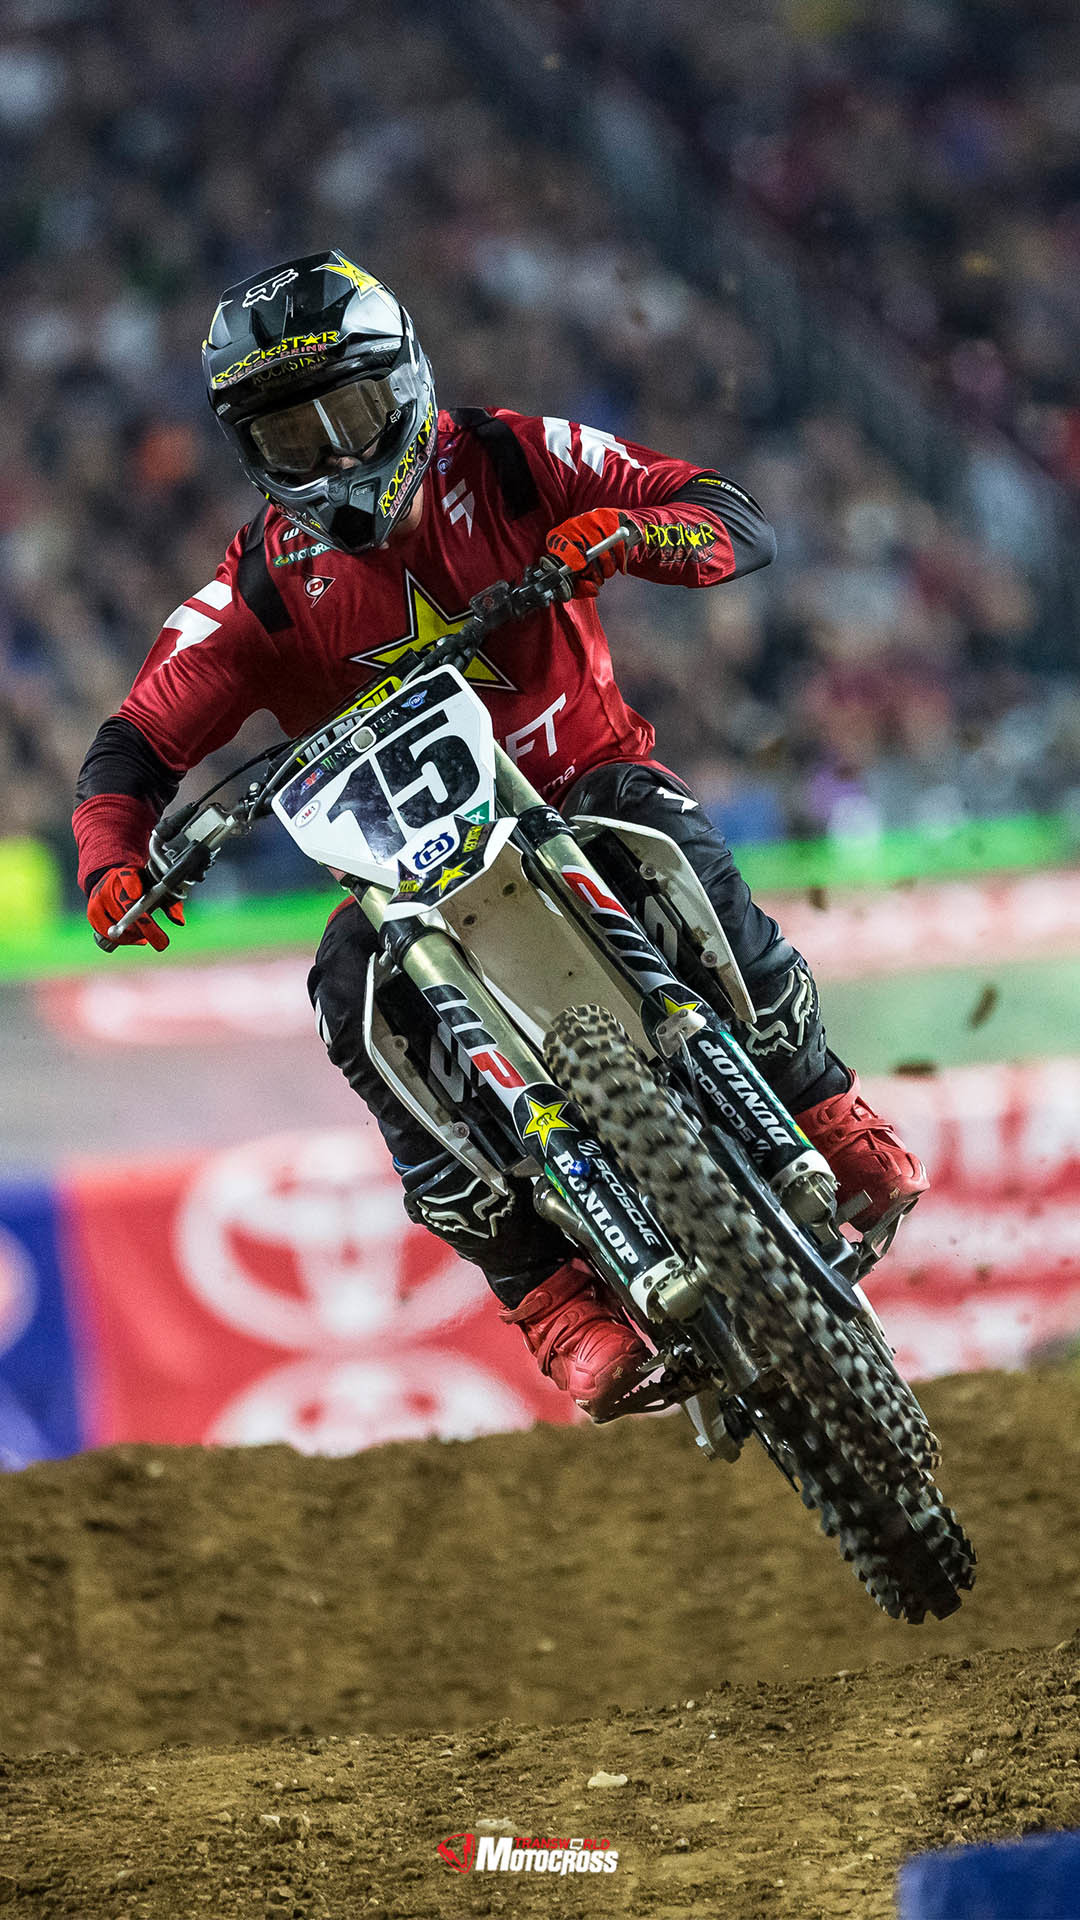 1080x1920 The 2018 Glendale Supercross Was Full Of Action And We Gathered A Handful